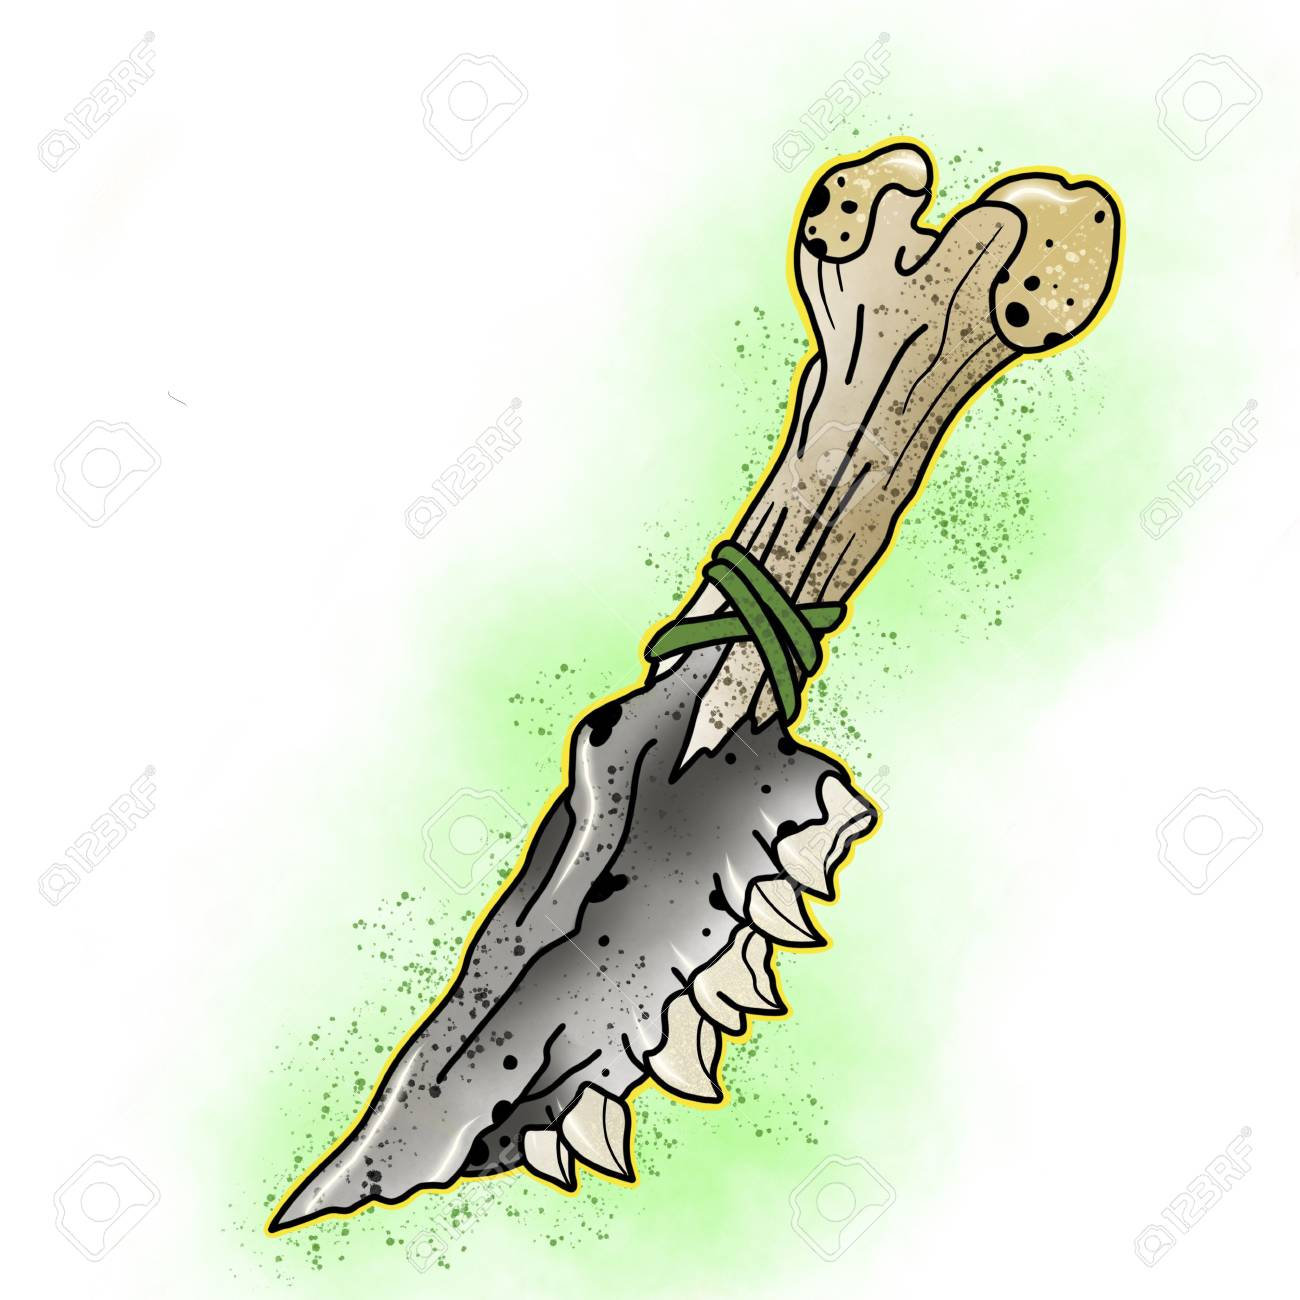 Stylized knife. Tattoo design. Cartoon illustration, hand drawn style. Banque d'images - 84466976